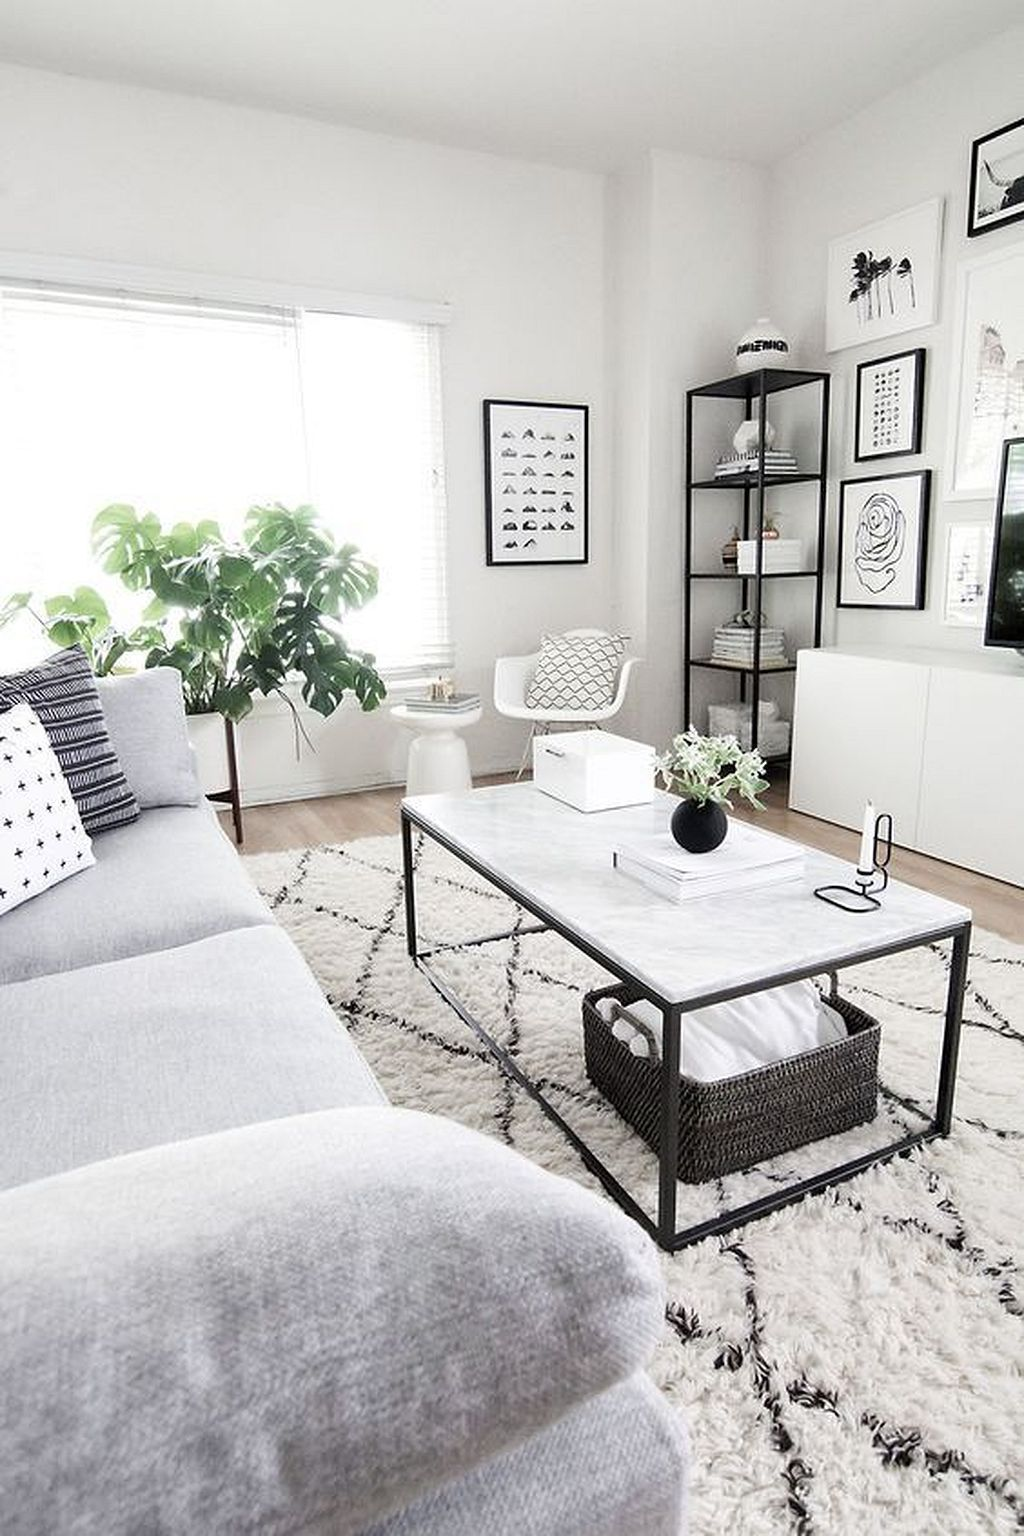 Best 19 Small Living Room Ideas And Design That Will Trend In 2019 Living Room Decor Apartment Minimalist Living Room Living Room Scandinavian